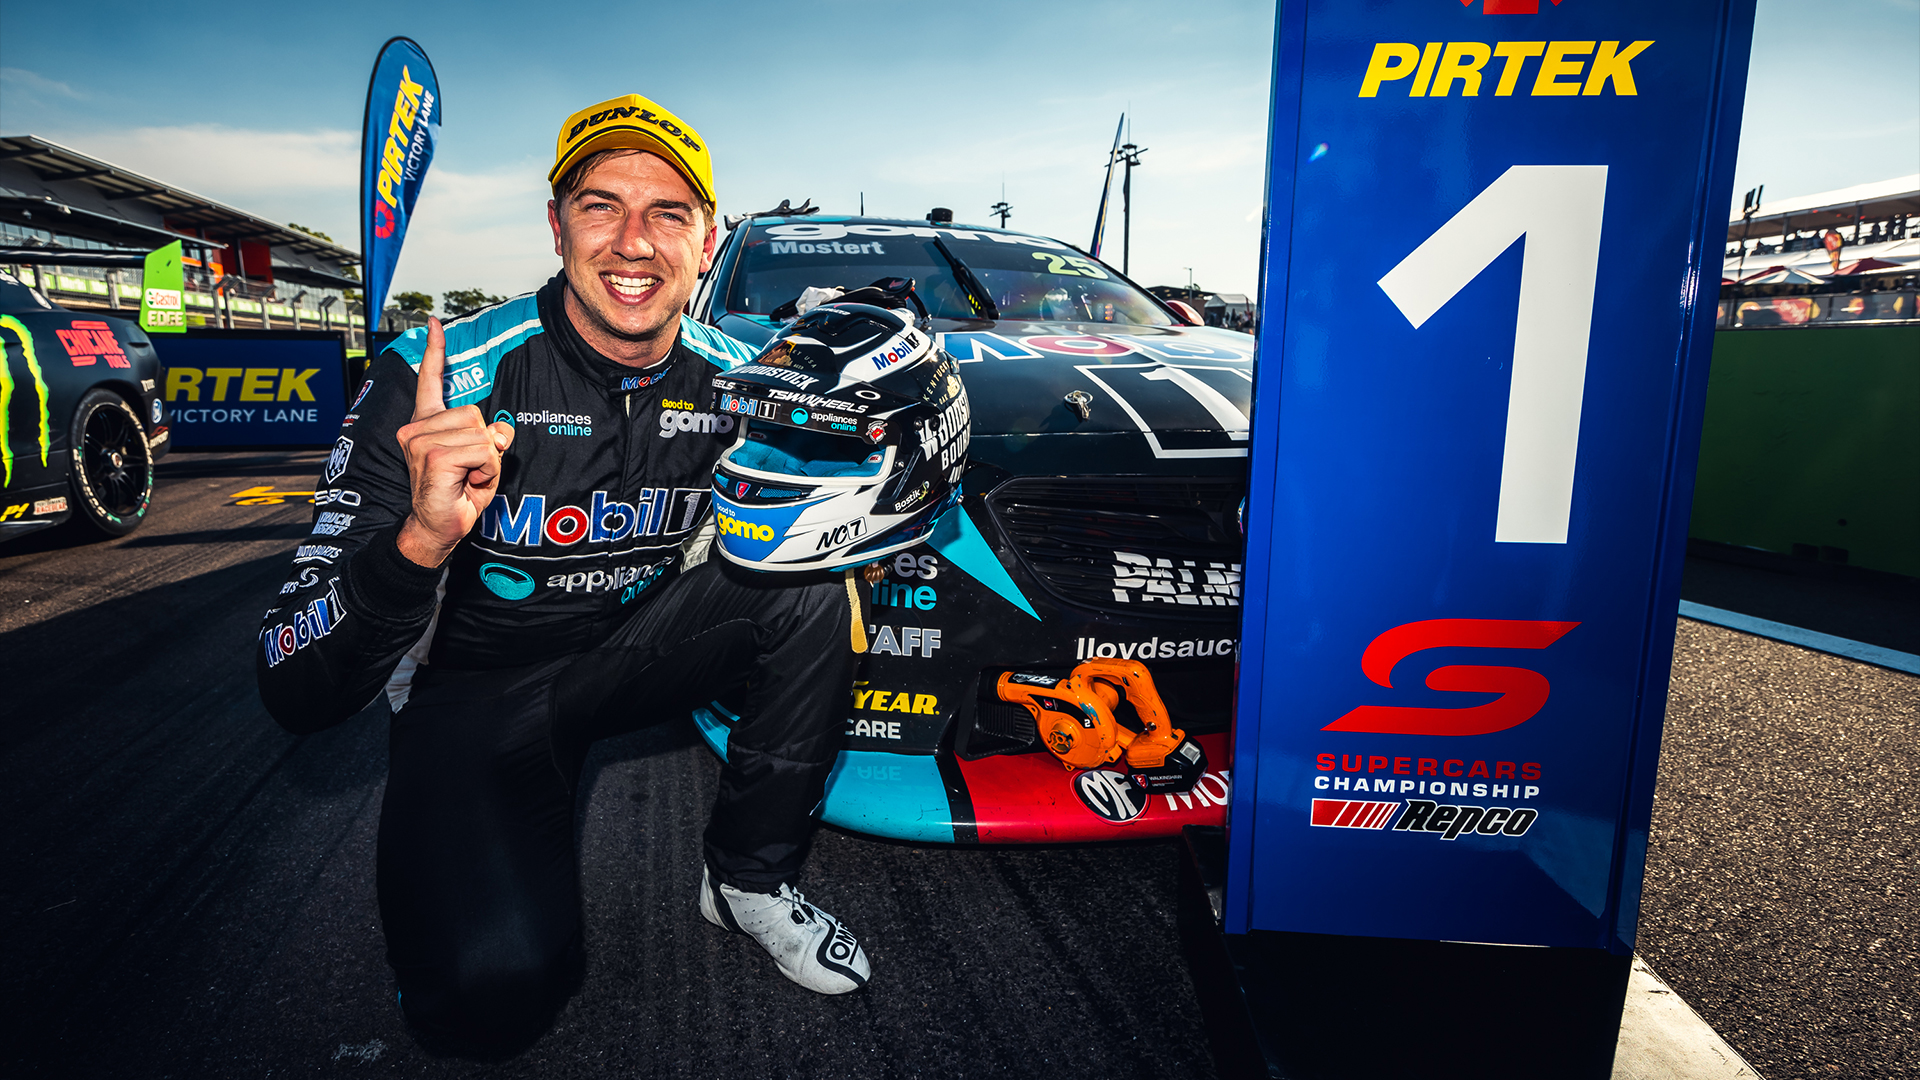 Mostert claimed his second win of 2021.